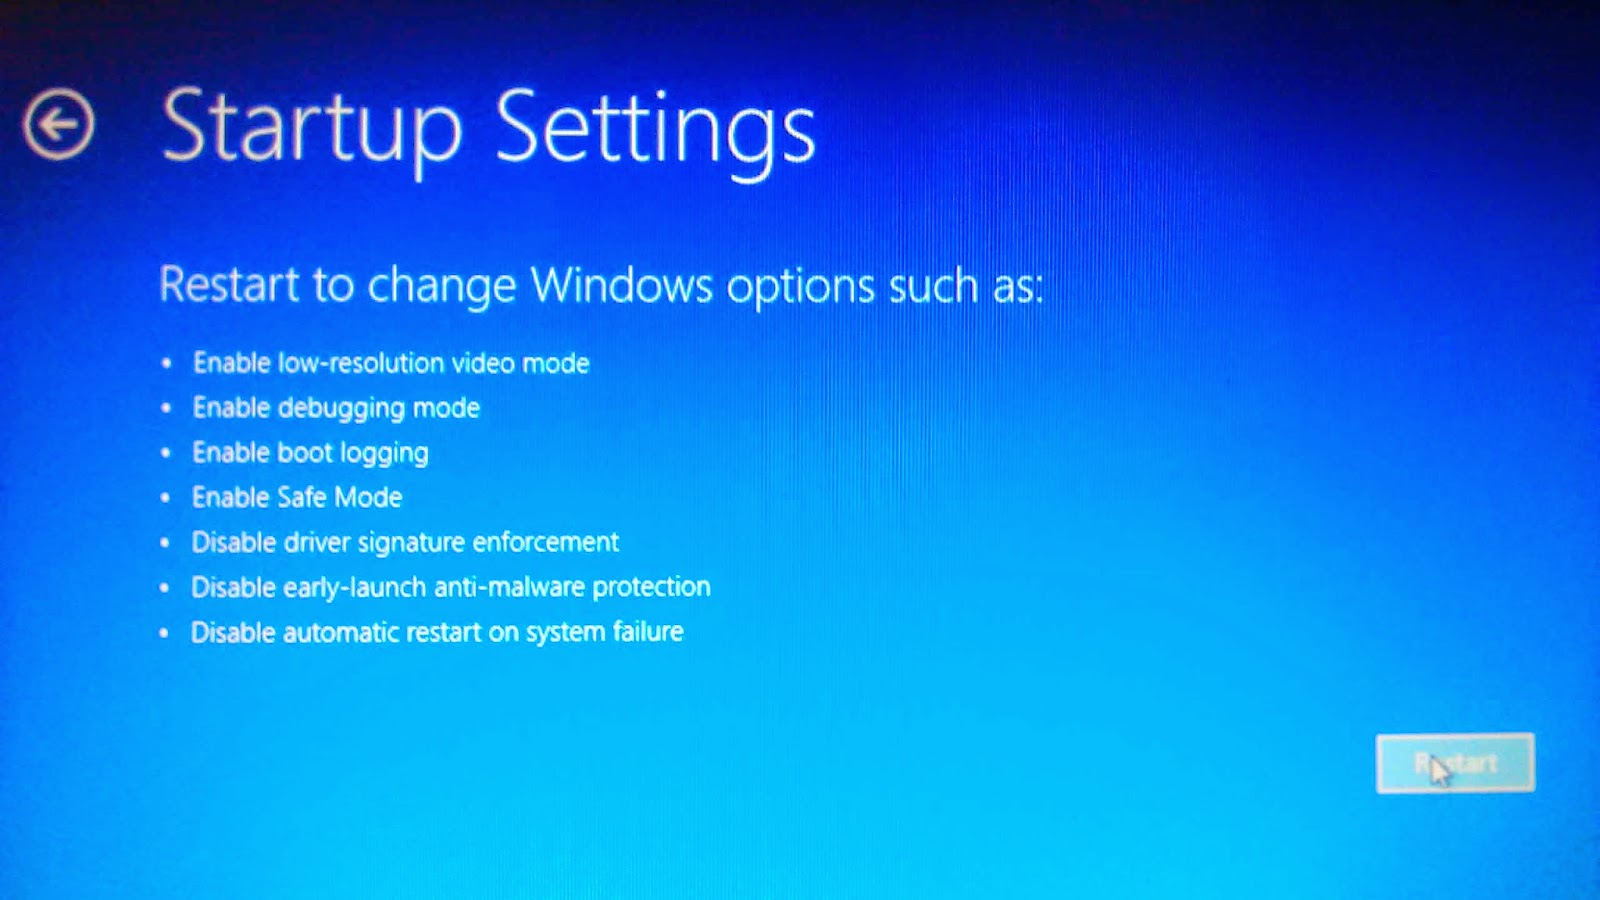 Startup settings to restart with disable drivers signature enforcement